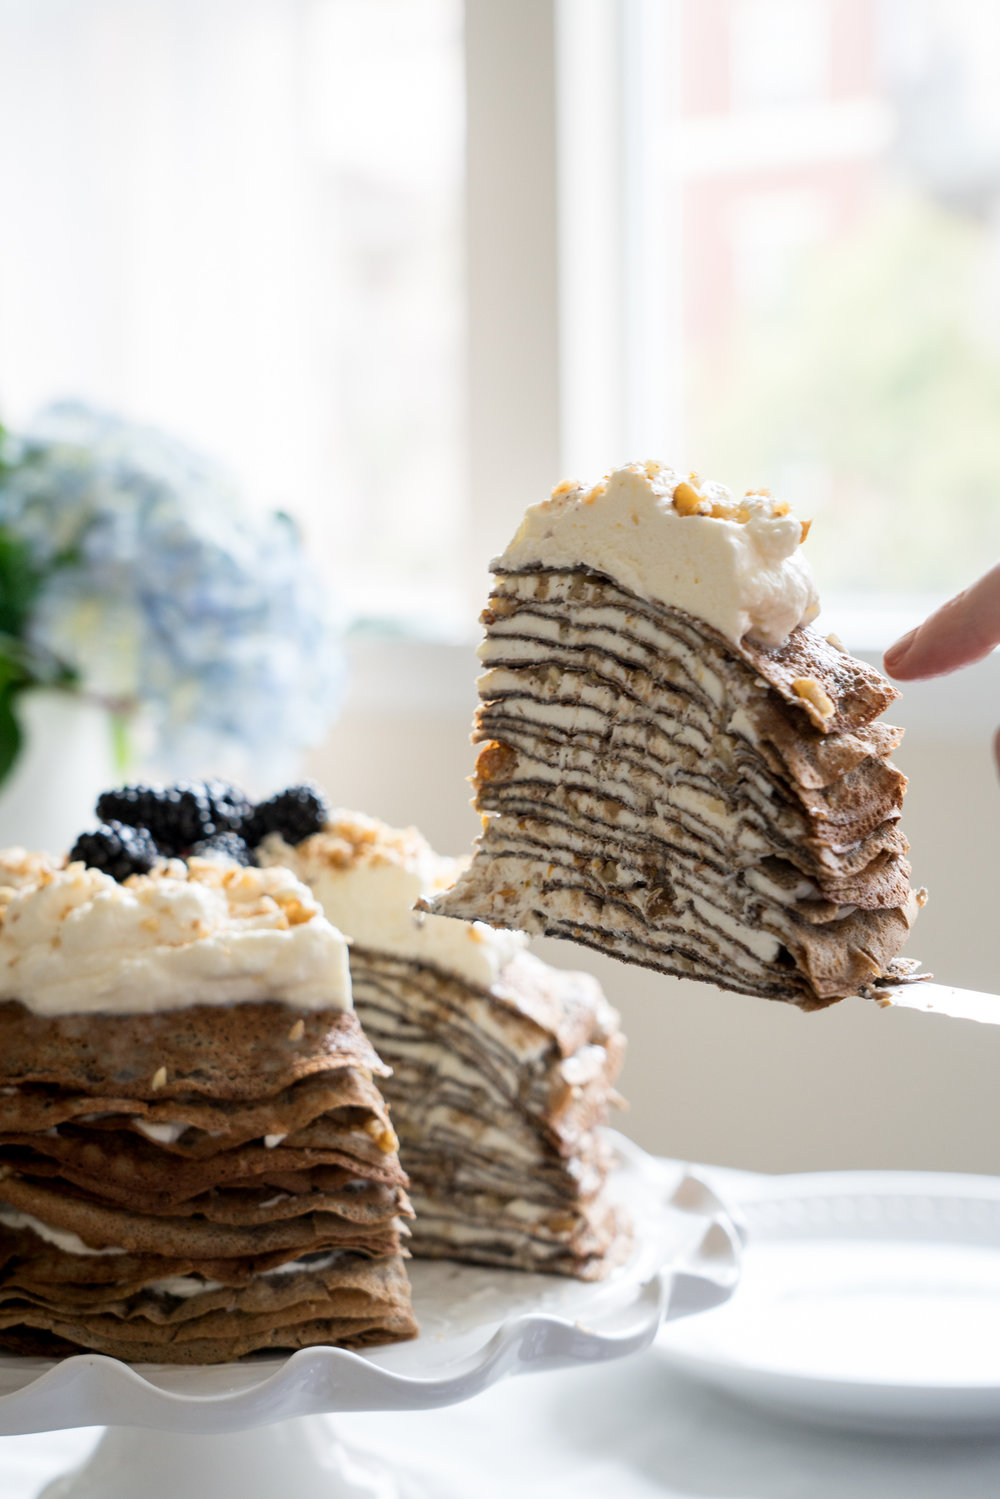 Those Layers Though... Buckwheat Crêpe Cake with Whipped Cream Cheese, Walnuts, and Honey - Brunchographers' French-Inspired Wine Tasting Brunch